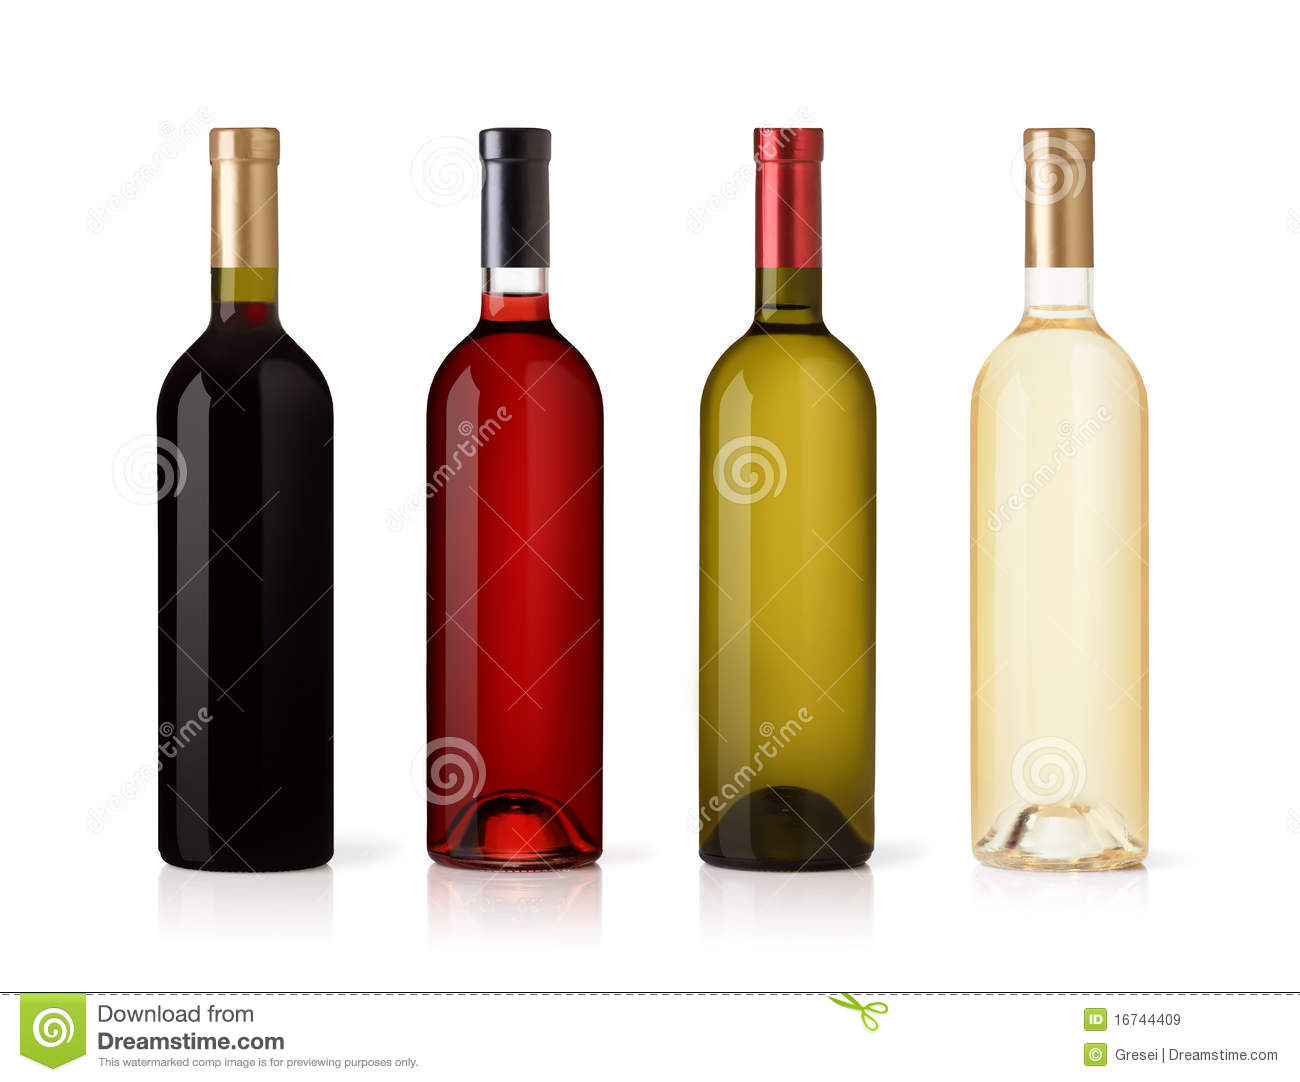 Set of white, rose, and red wine bottles.